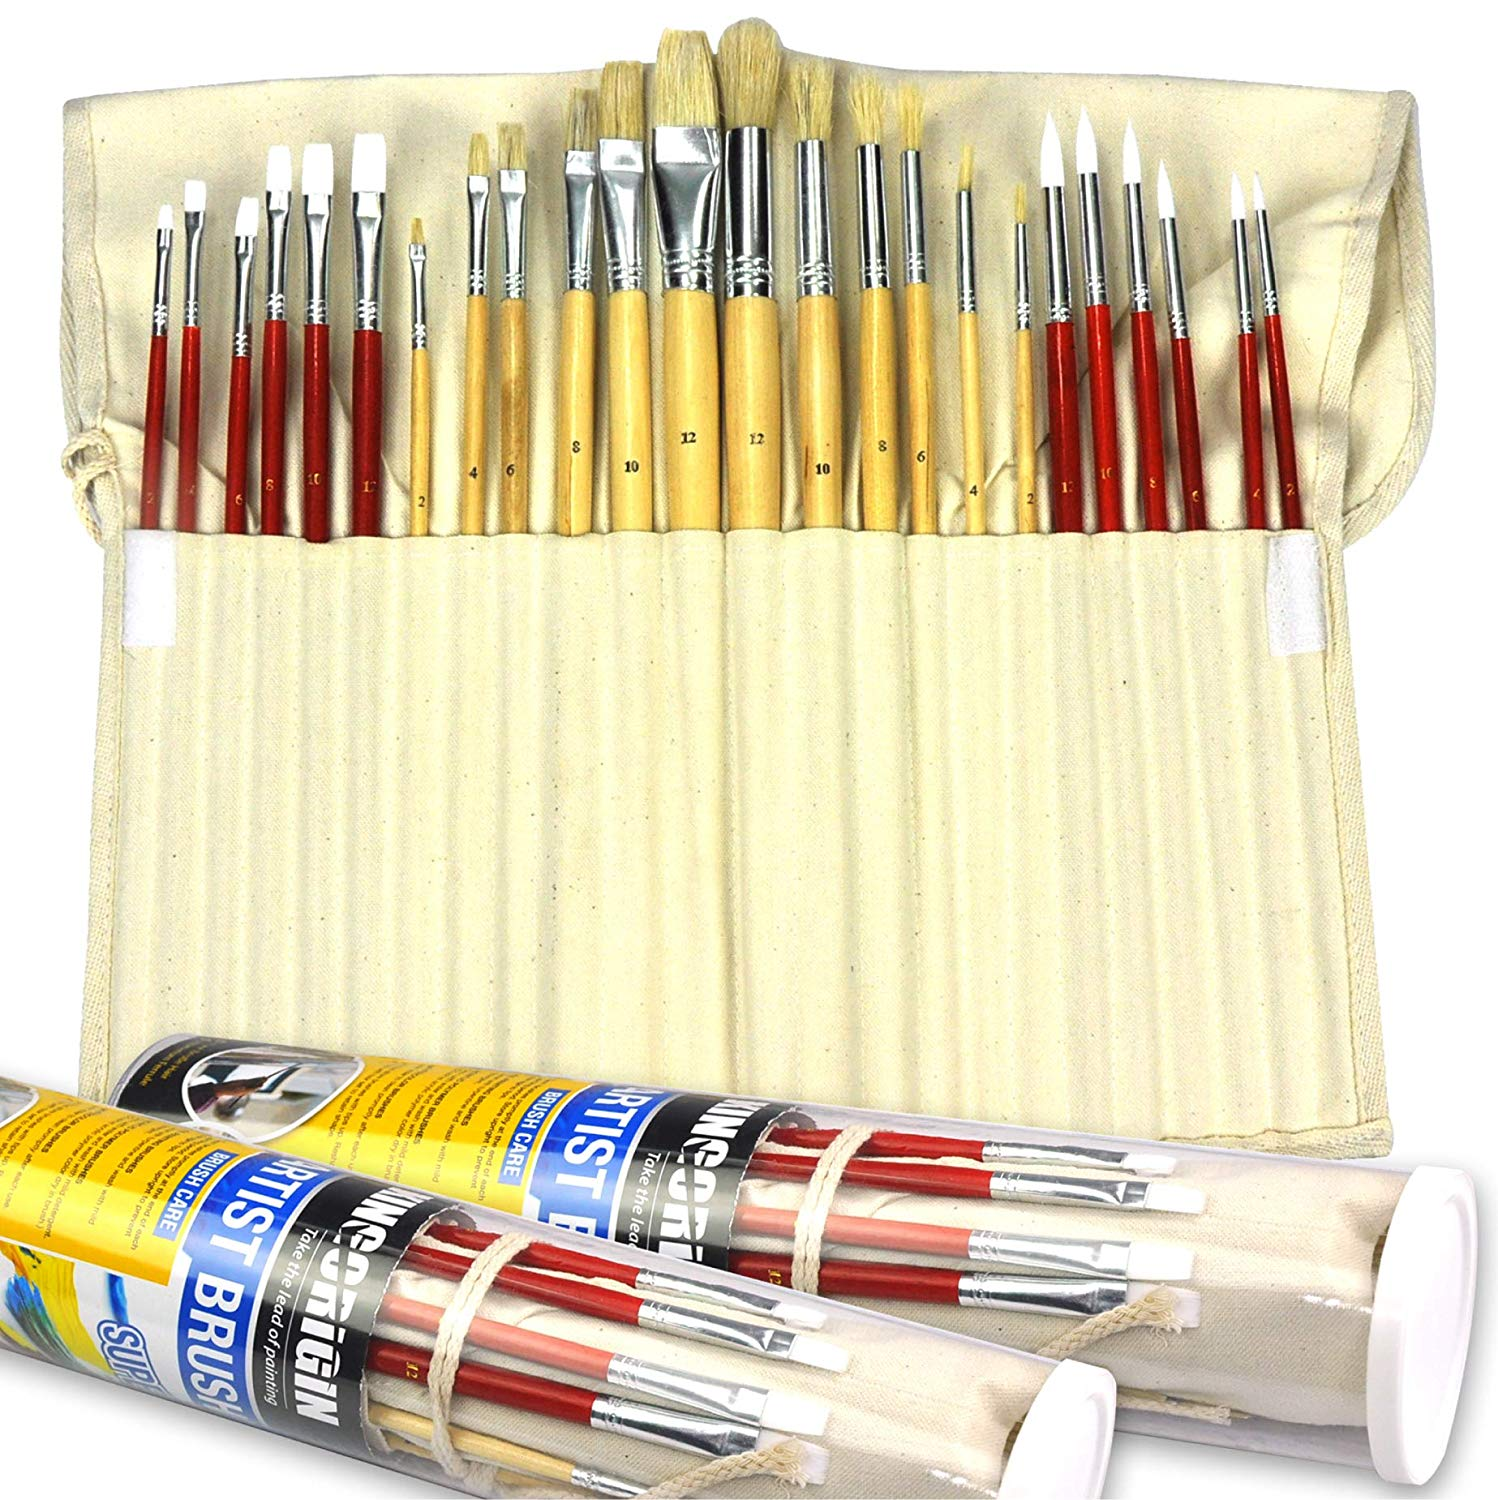 24 Piece Premium Paint Brush Artist Brush Set for Watercolor Oil Acrylic Painting with Canvas Holder,Paint Brushes for Kids,Office,School,Brush Set